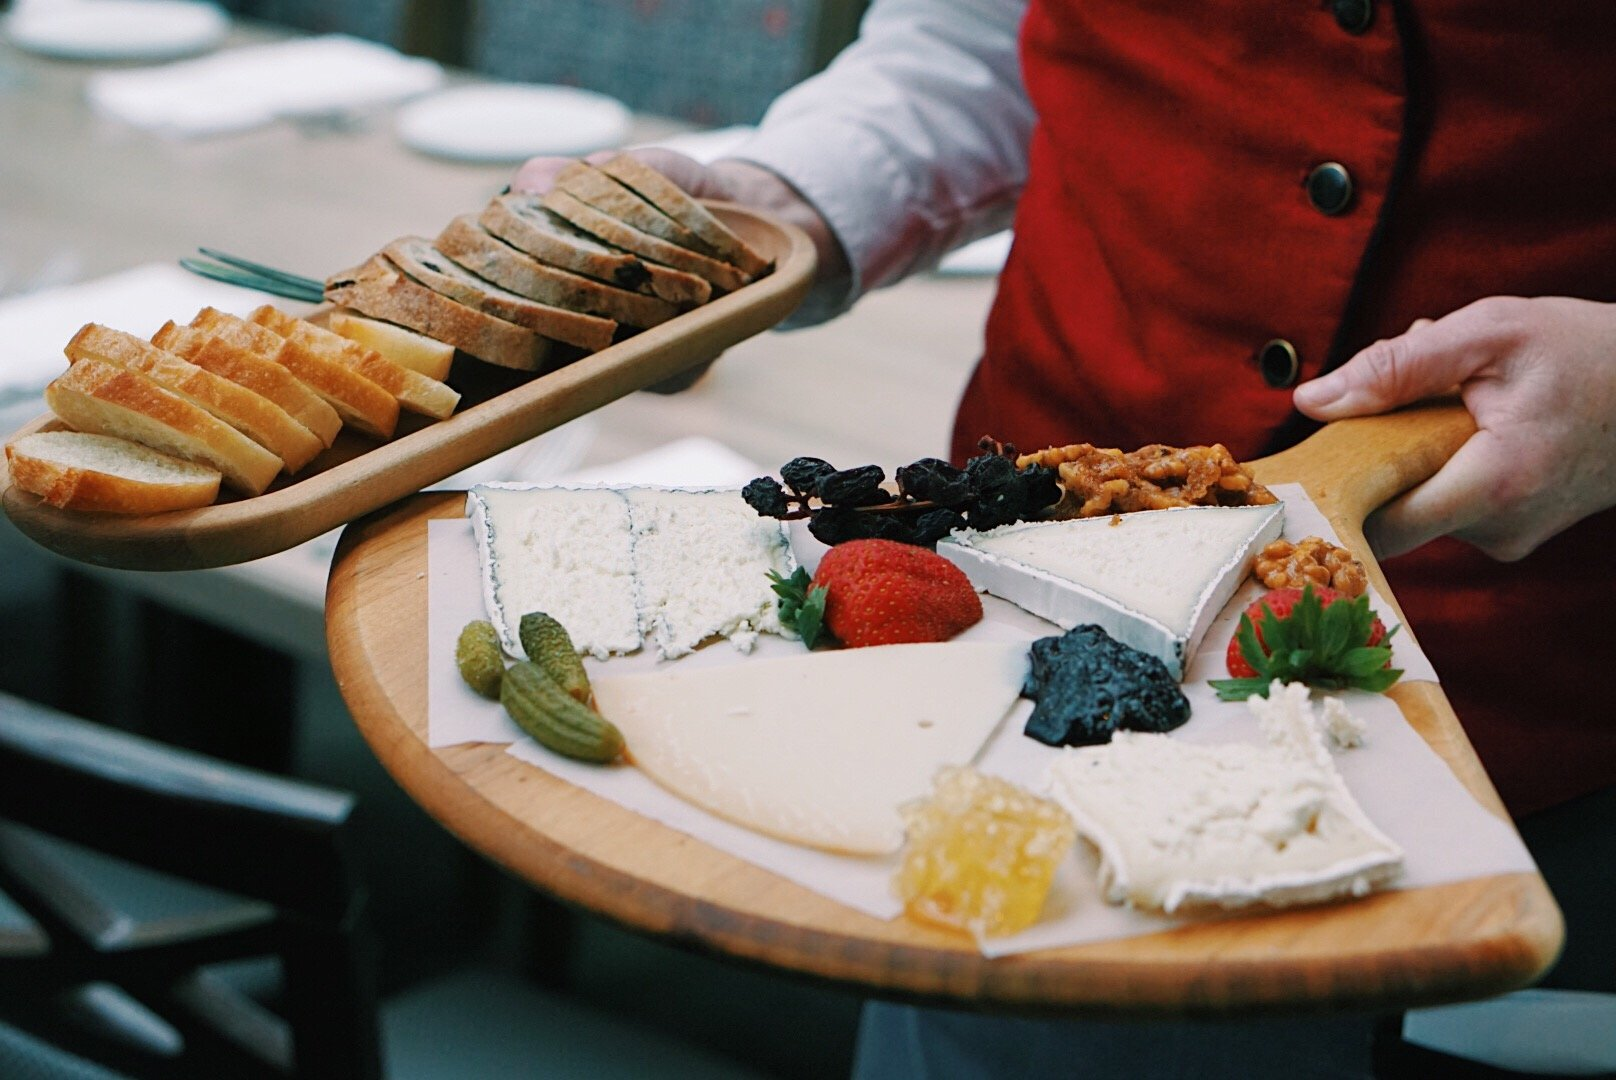 SideDoor is Throwing an Epic Cheese & Charcuterie Backyard Party August 16th